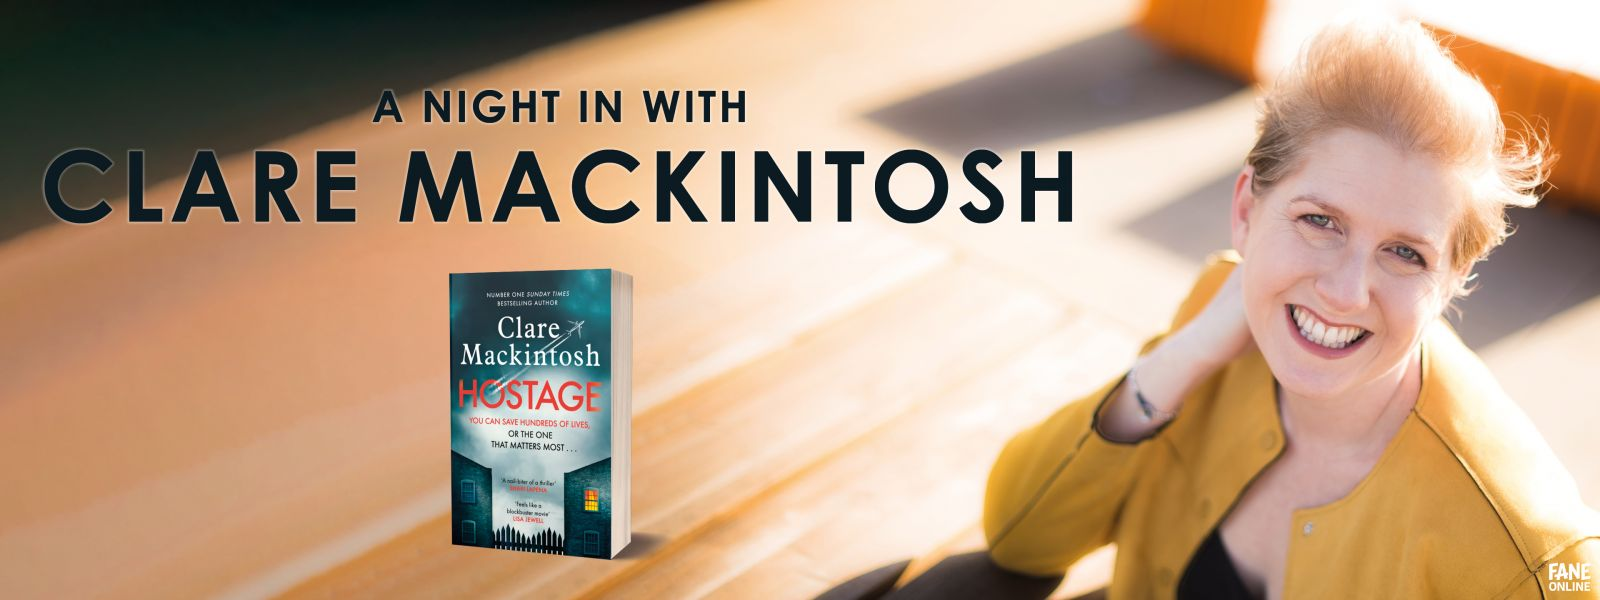 A Night In With Clare Mackintosh